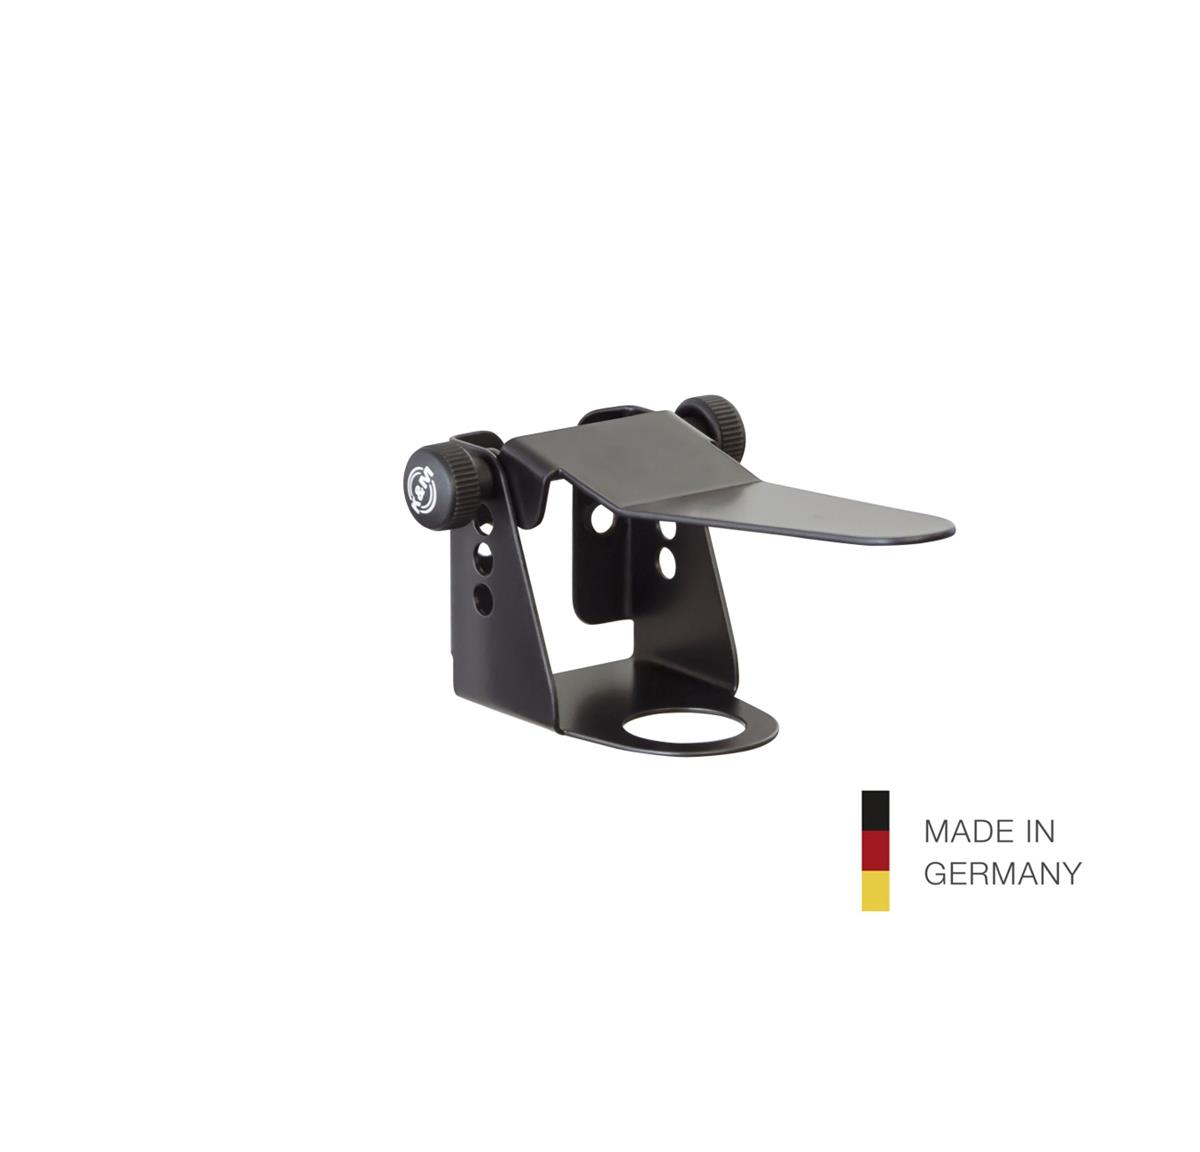 K&M 80398 Holder with lever for Disinfectan,25mm, black